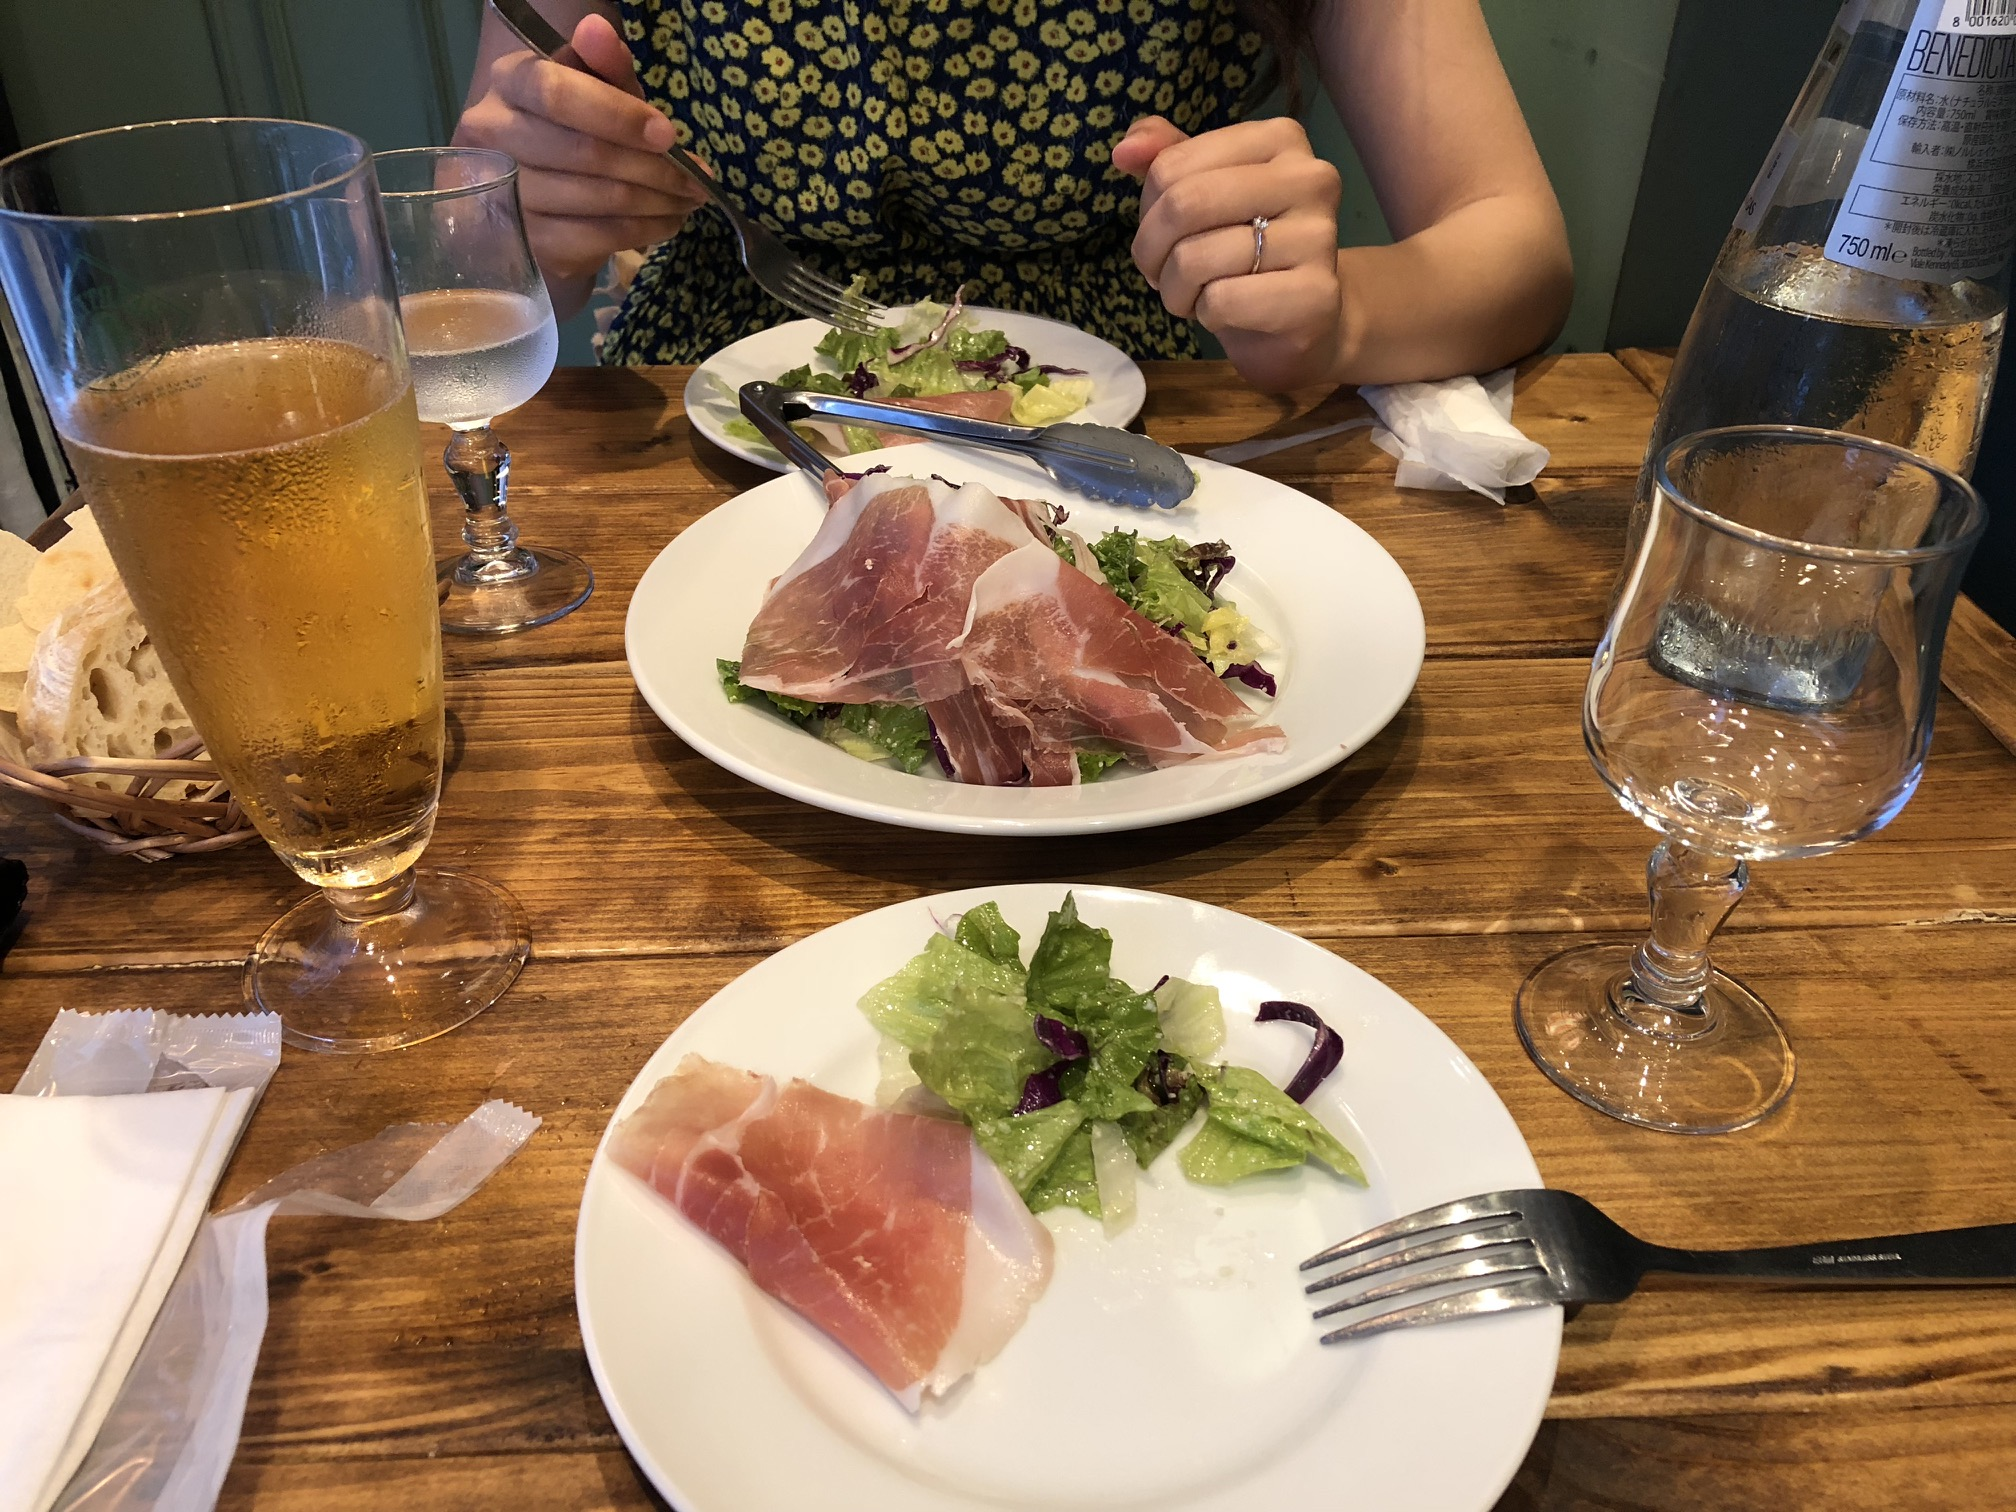 (Caption) We finished the day in Italian restaurant with a salad… ?